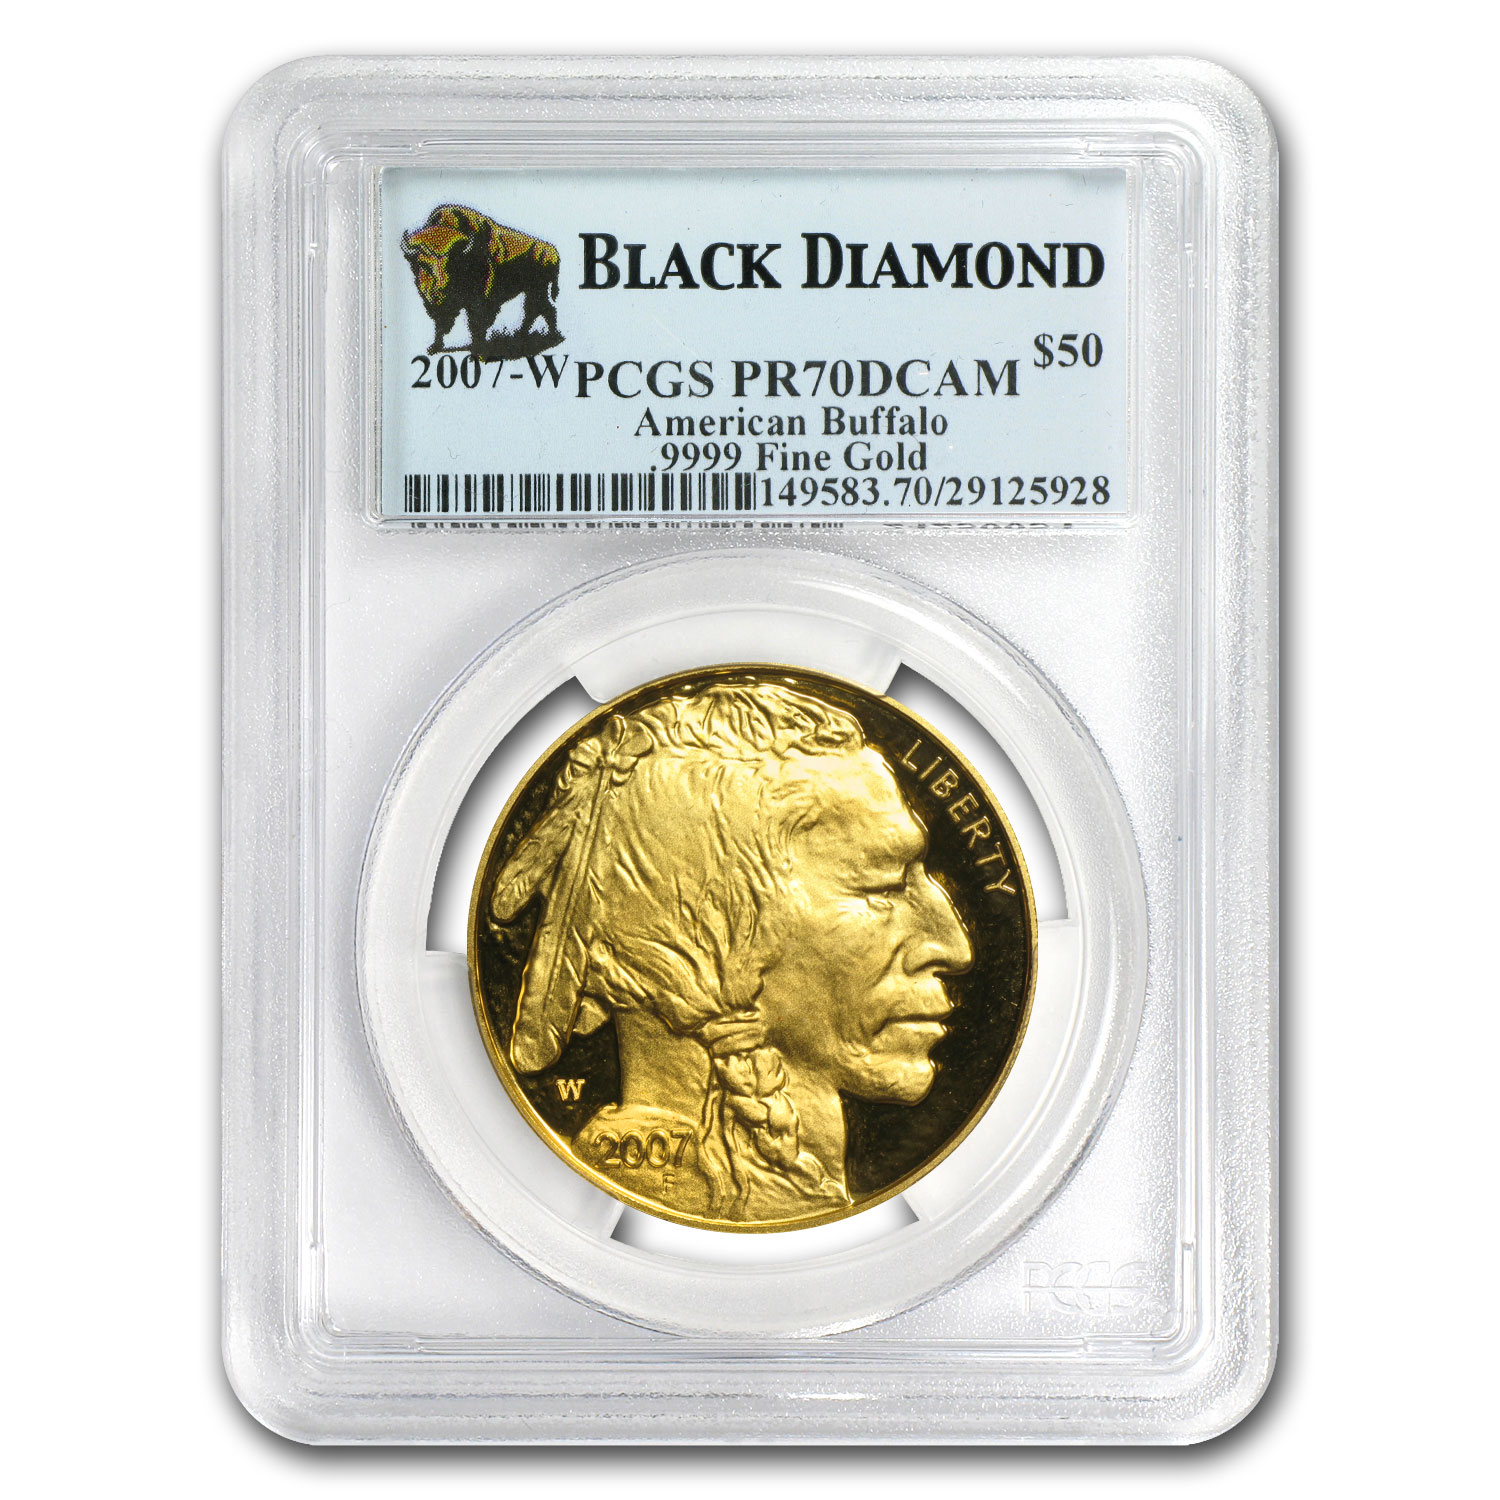 2006-2013 1 oz Gold Buffalo PR-70 PCGS Black Diamond 8-Coin Set